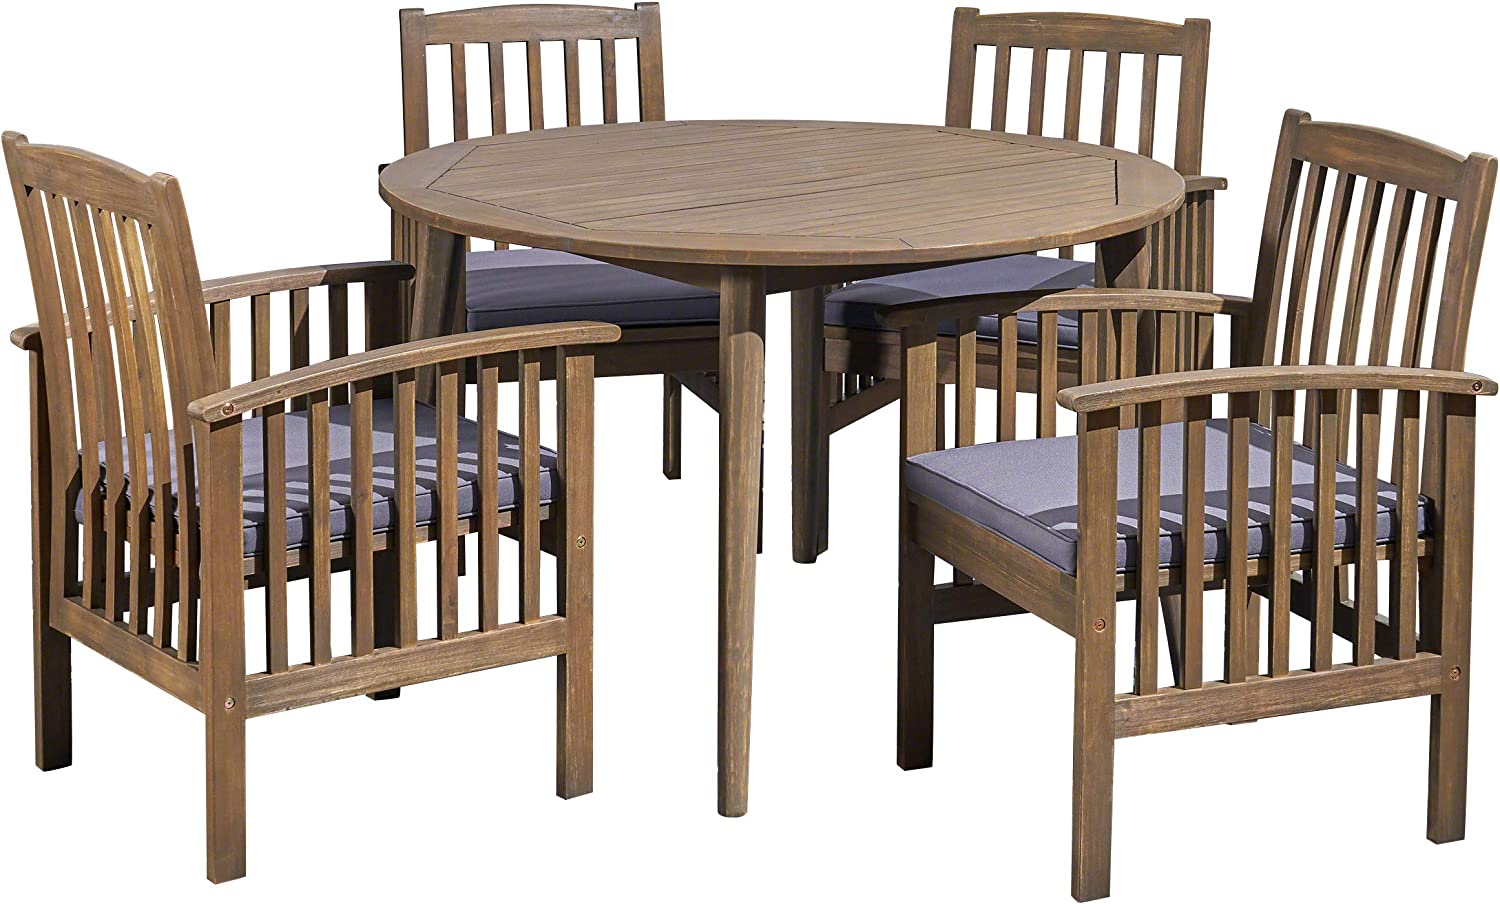 Great Deal Furniture Alma Acacia Patio Dining Set, 4-Seater, 47 Round Table with Straight Legs, Gray Finish, Dark Gray Outdoor Cushions